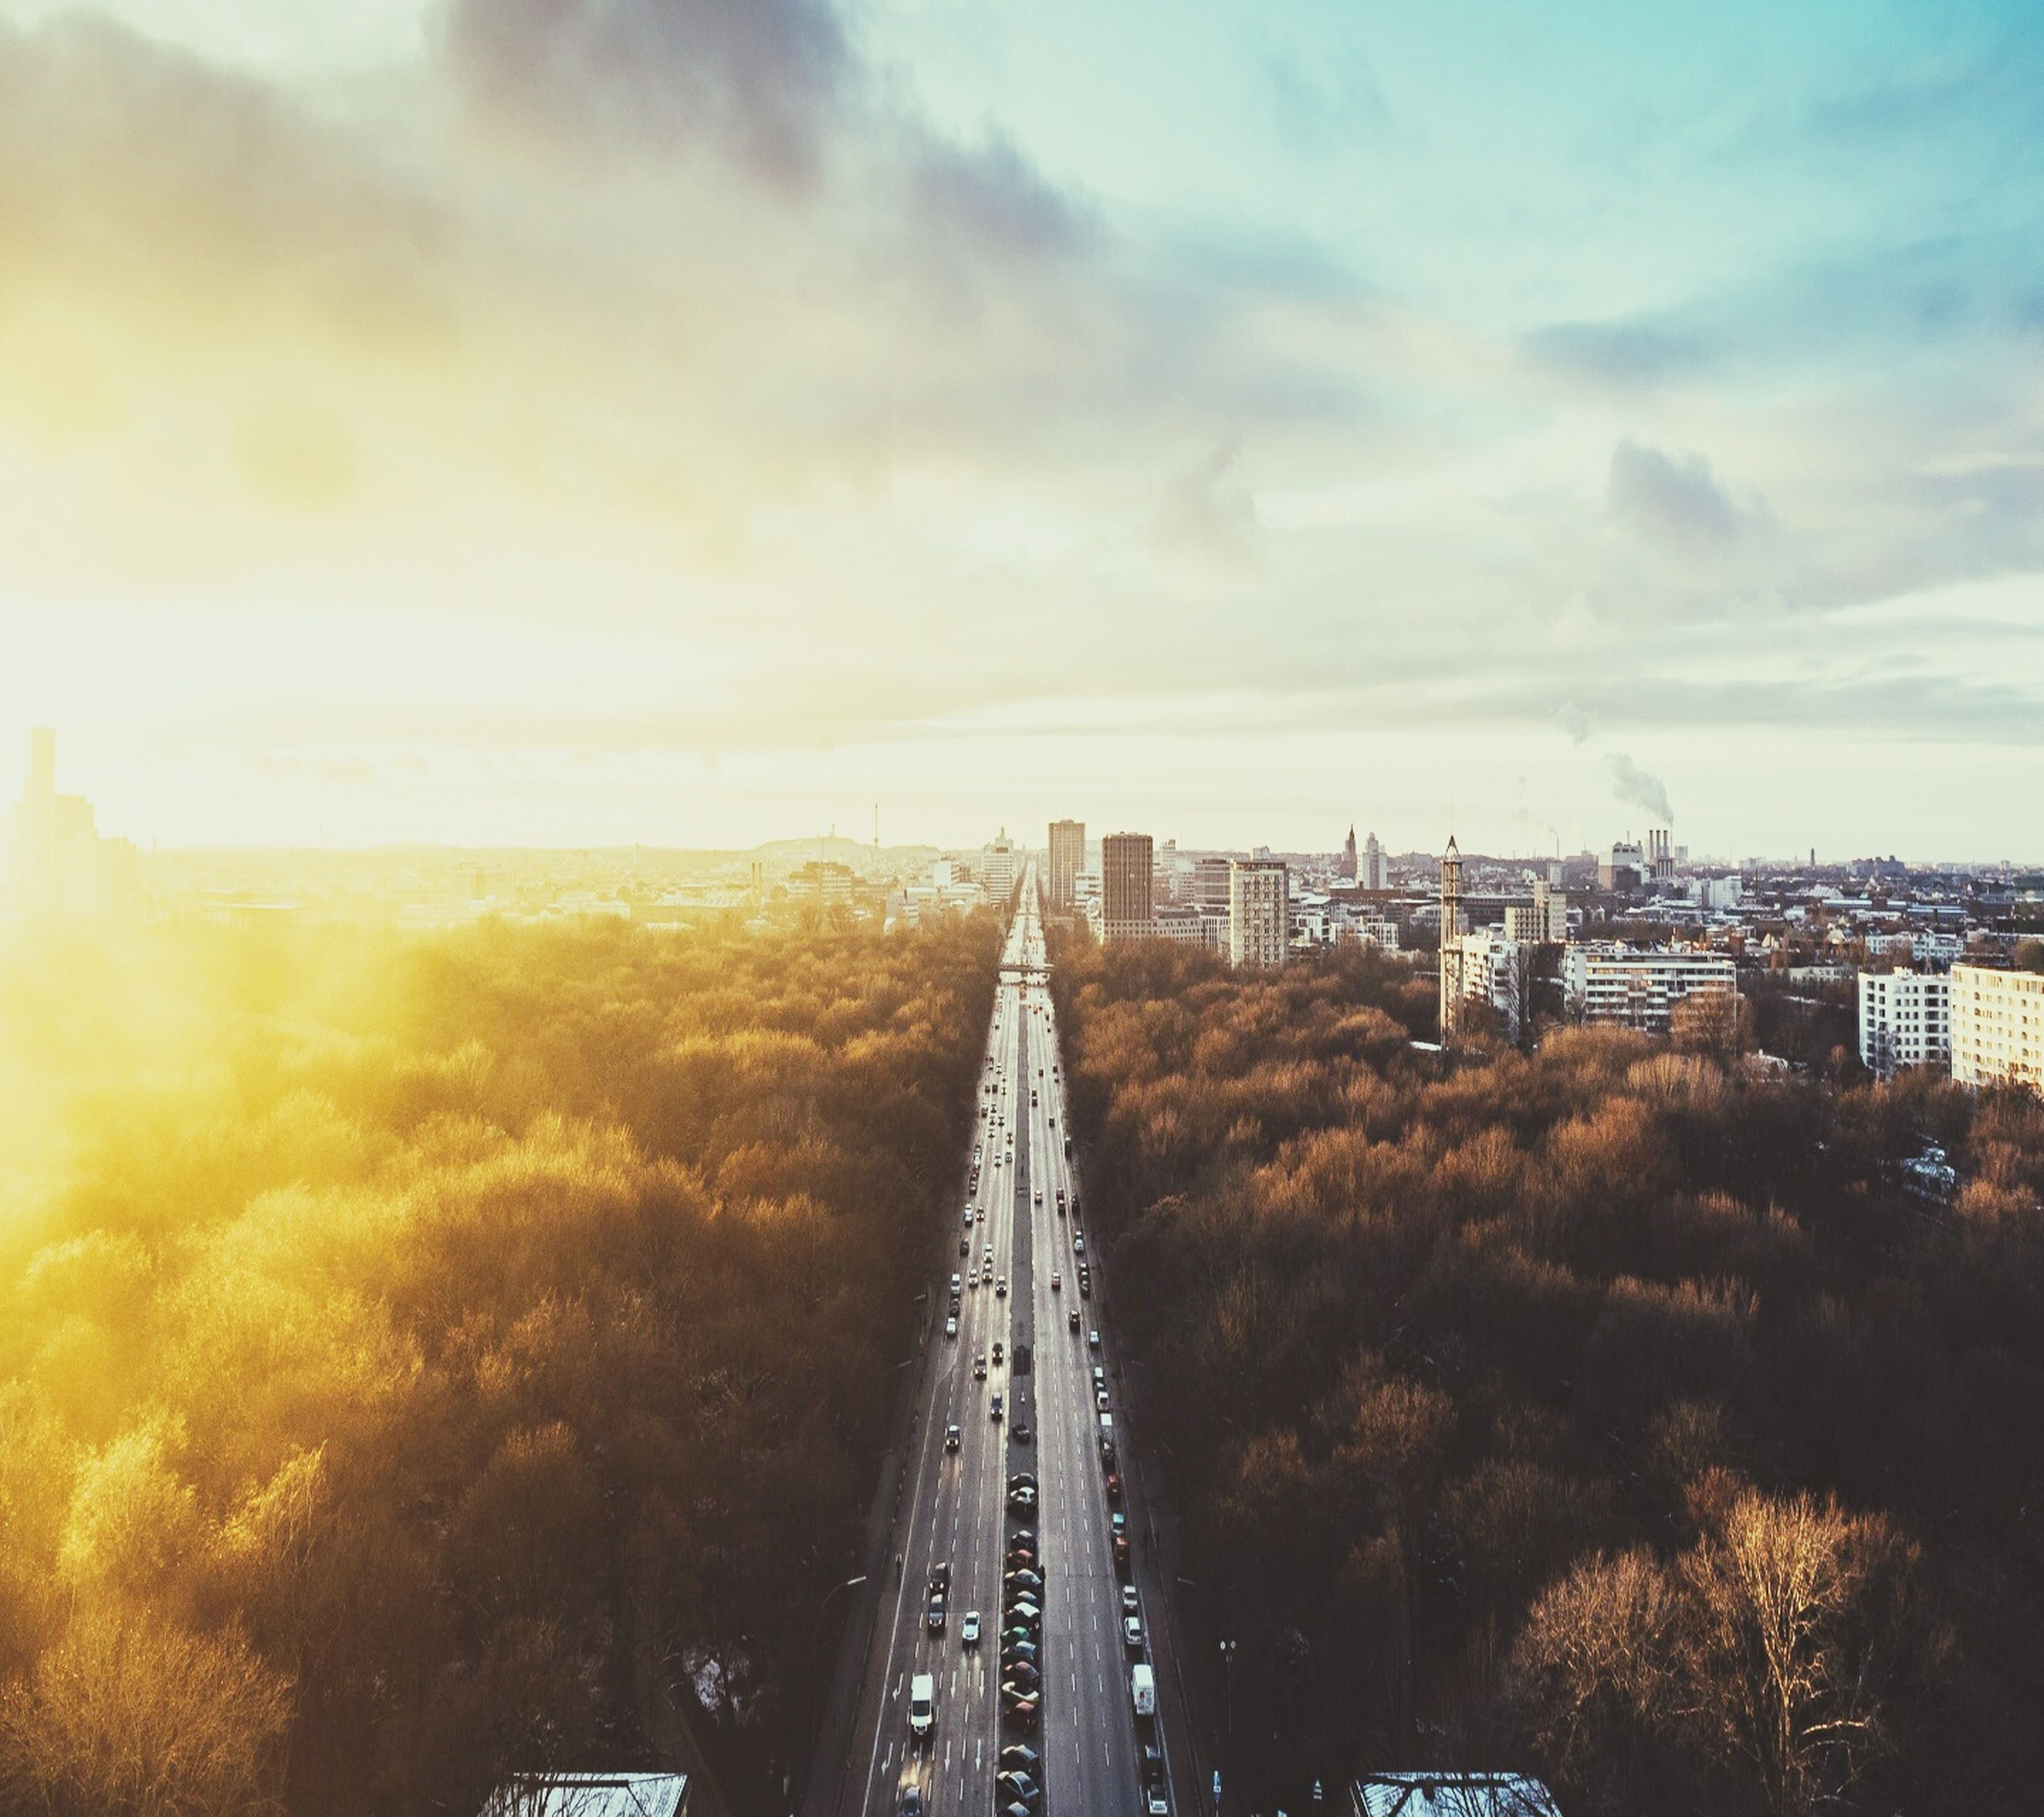 transportation, high angle view, mode of transport, sky, tree, city, land vehicle, cloud, cityscape, day, cloud - sky, diminishing perspective, no people, aerial view, the way forward